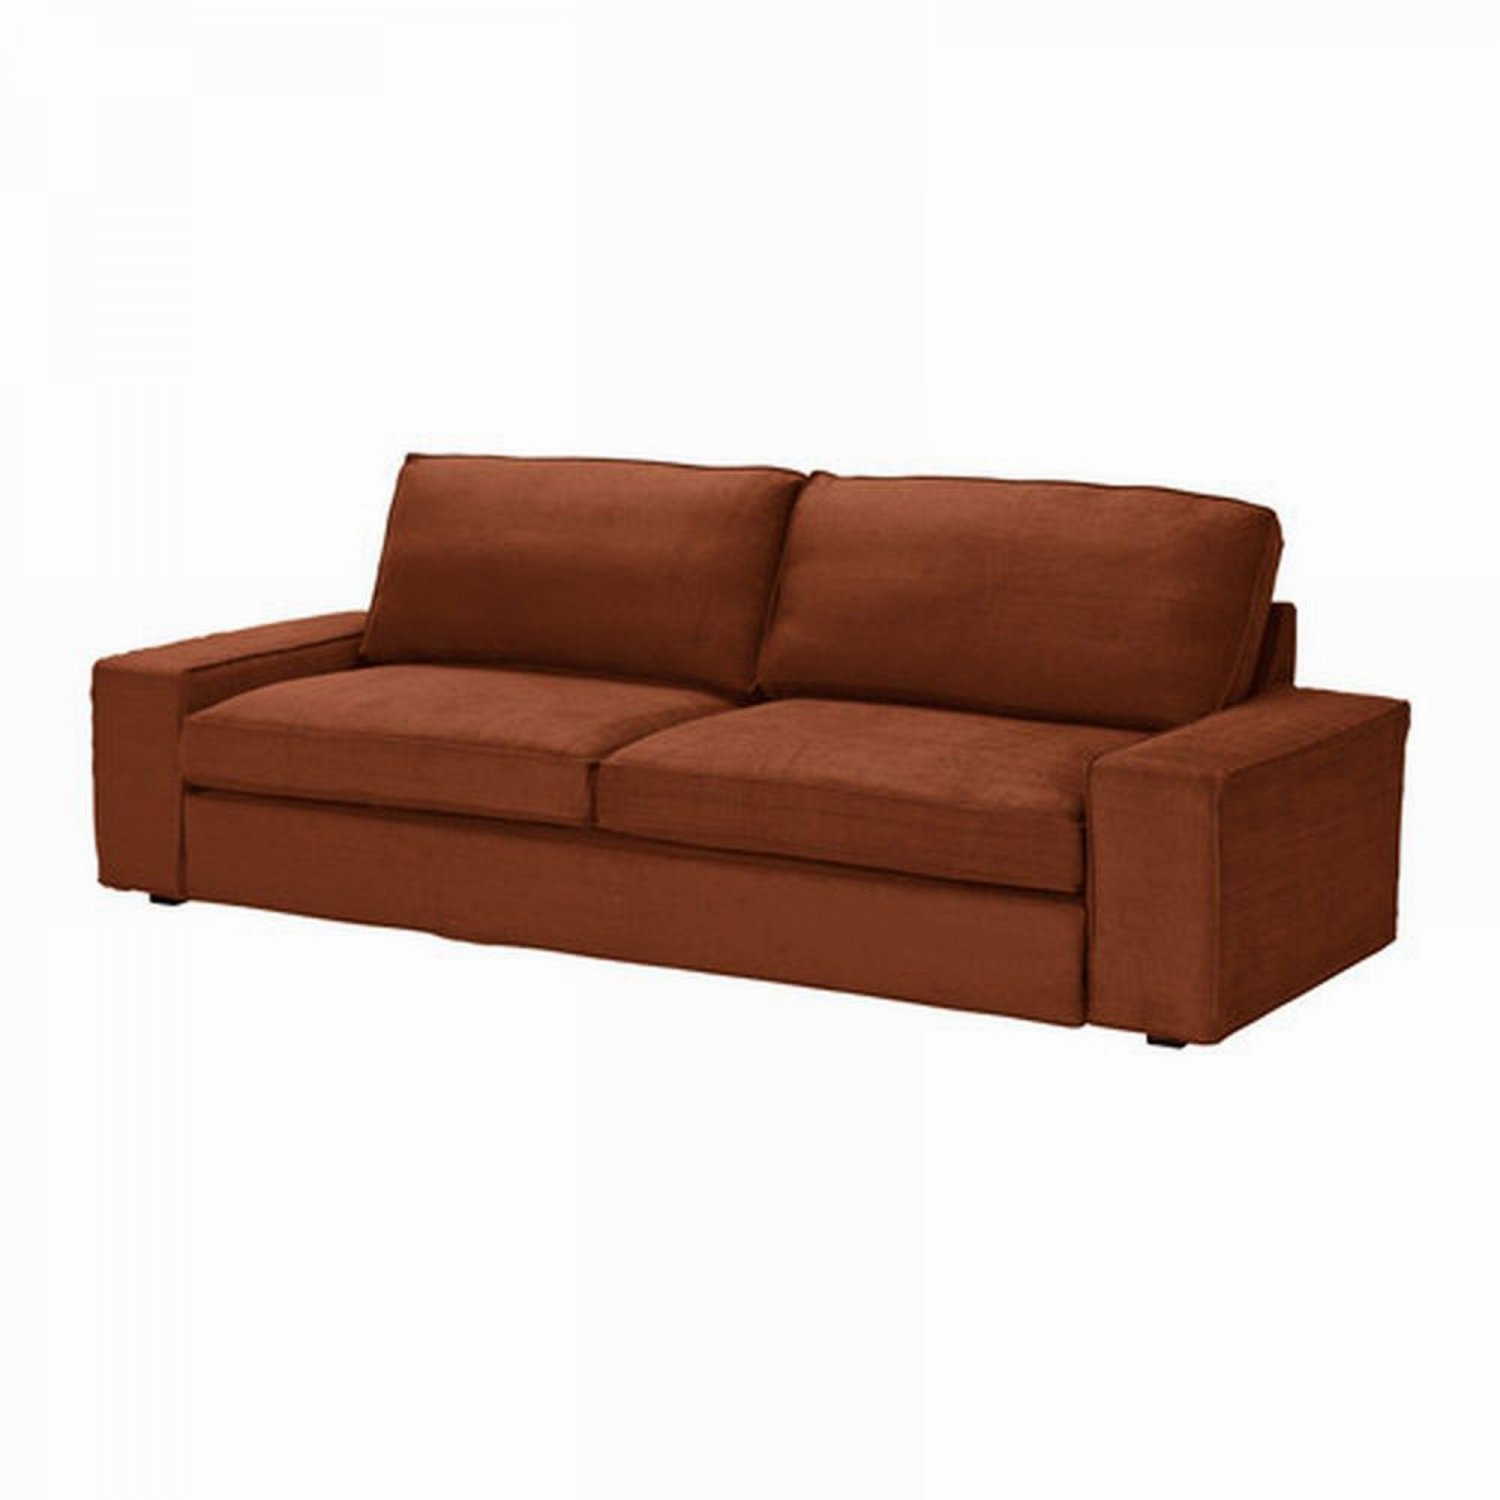 Ikea kivik sofa bed slipcover cover tullinge rust brown for Housse sofa ikea